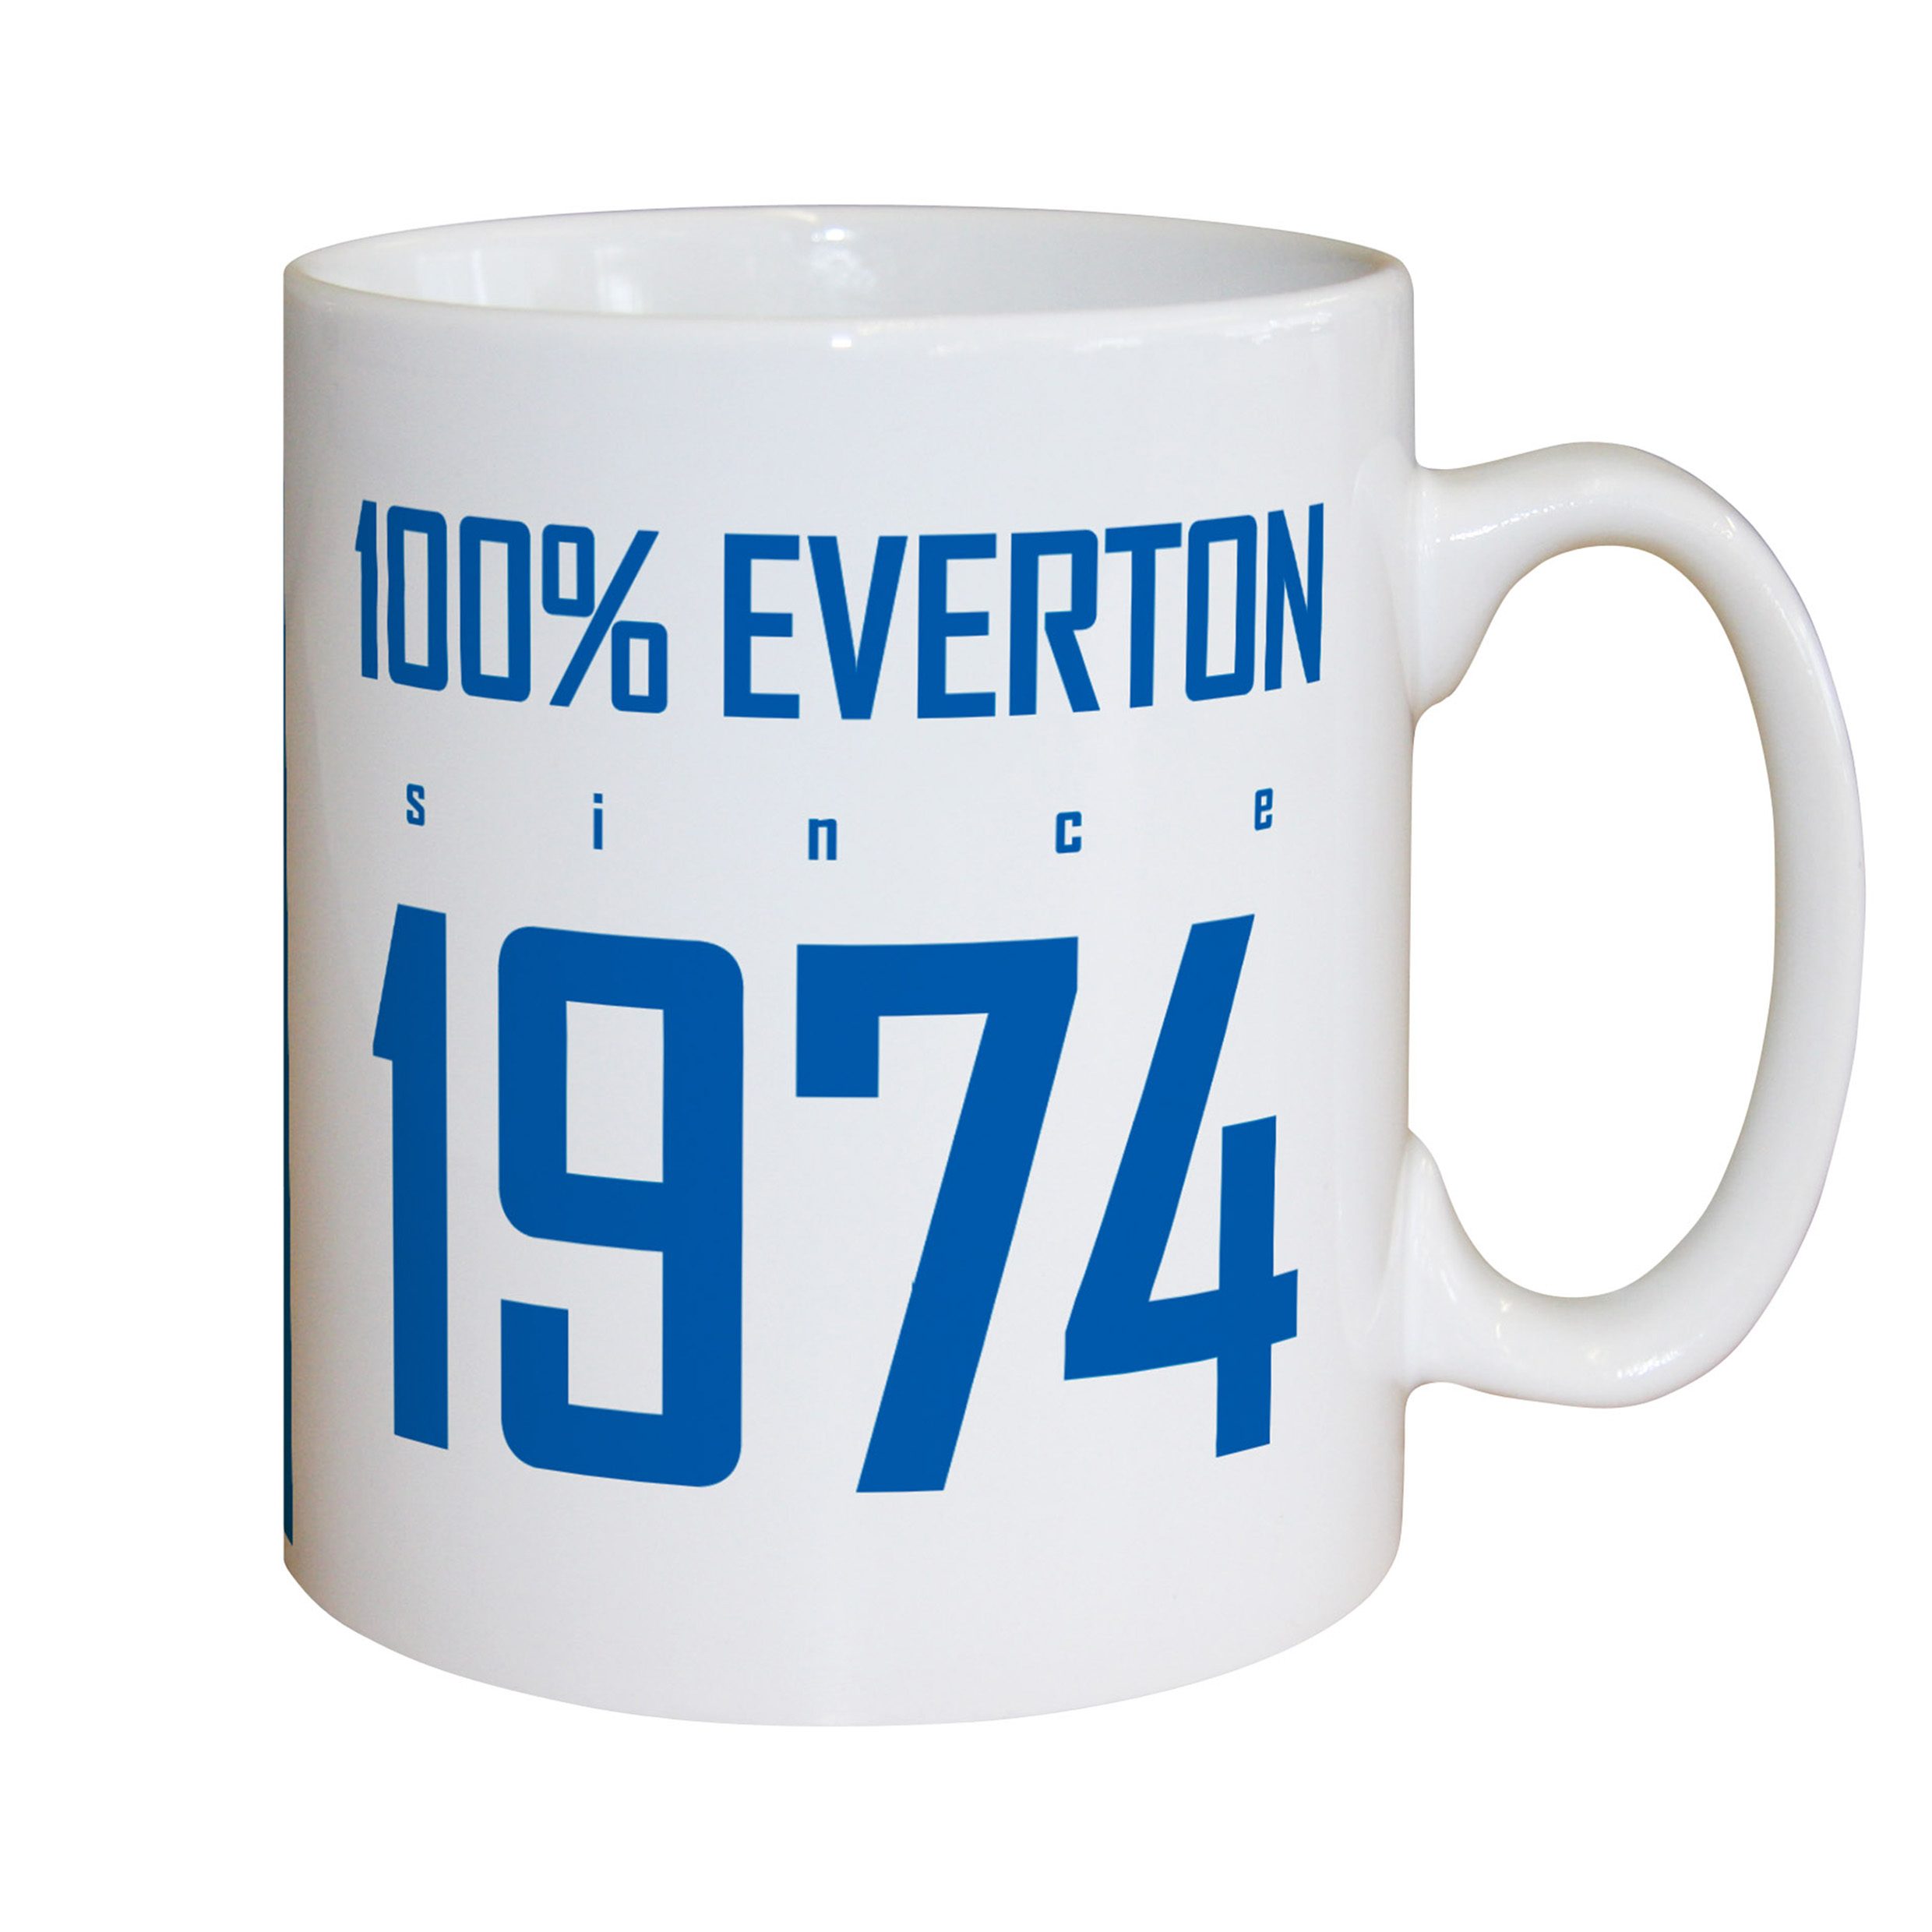 Everton Personalised 100 Percent Everton Mug